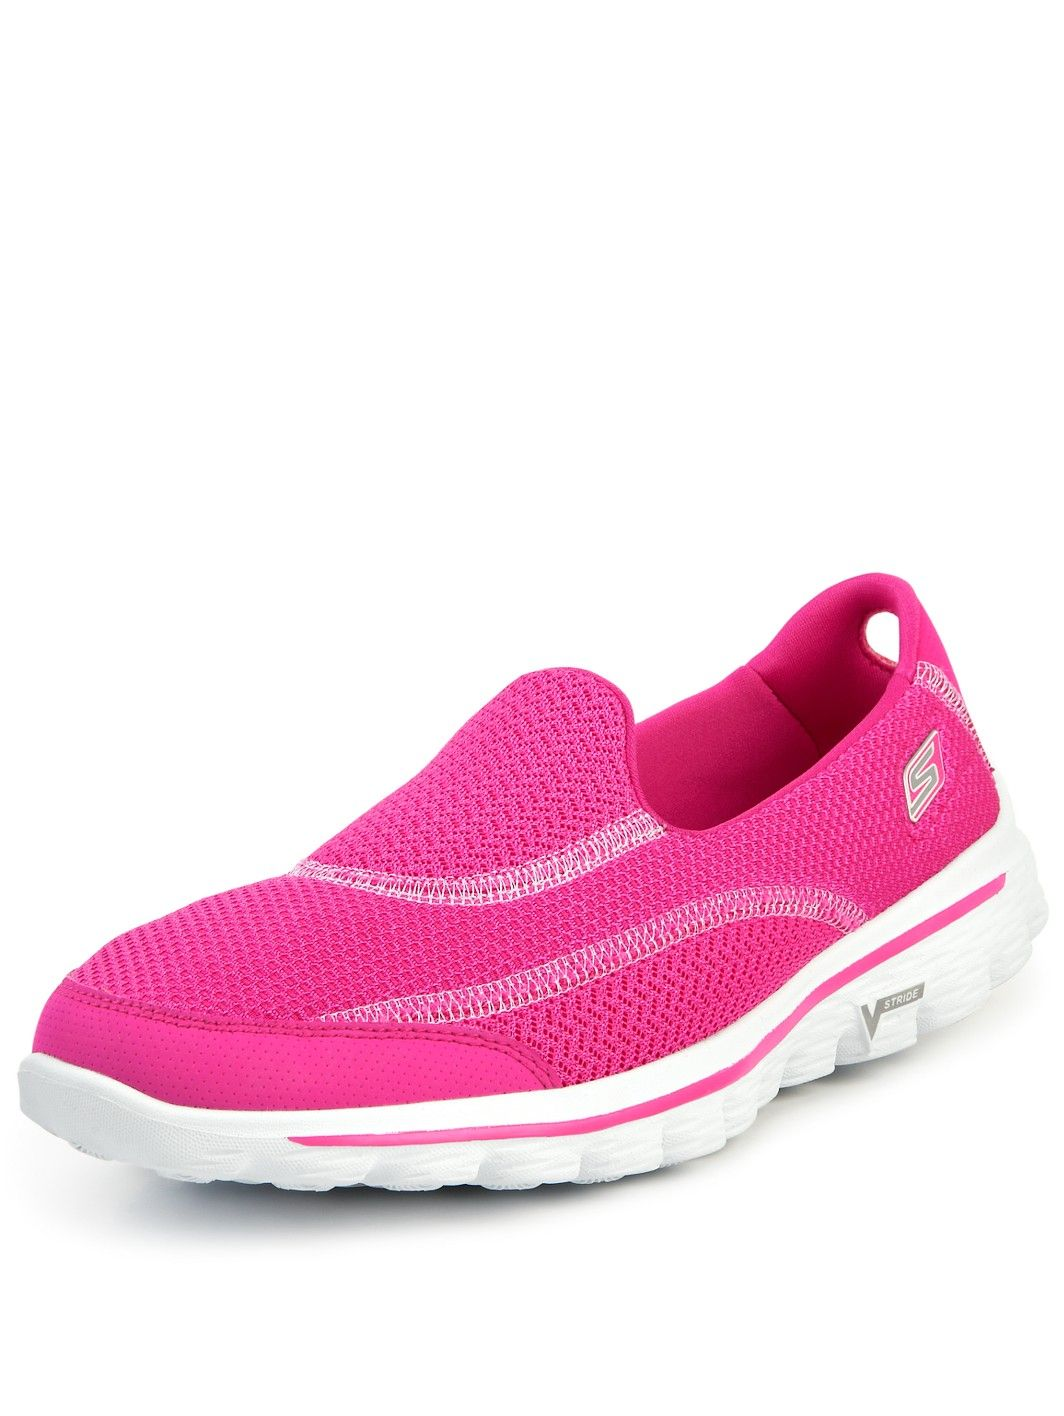 dfda4d8592831 Seriously, the most comfortable shoes ever! Even after 12 hour shifts my  feet feel great. Skechers Go Walk 2 Pumps